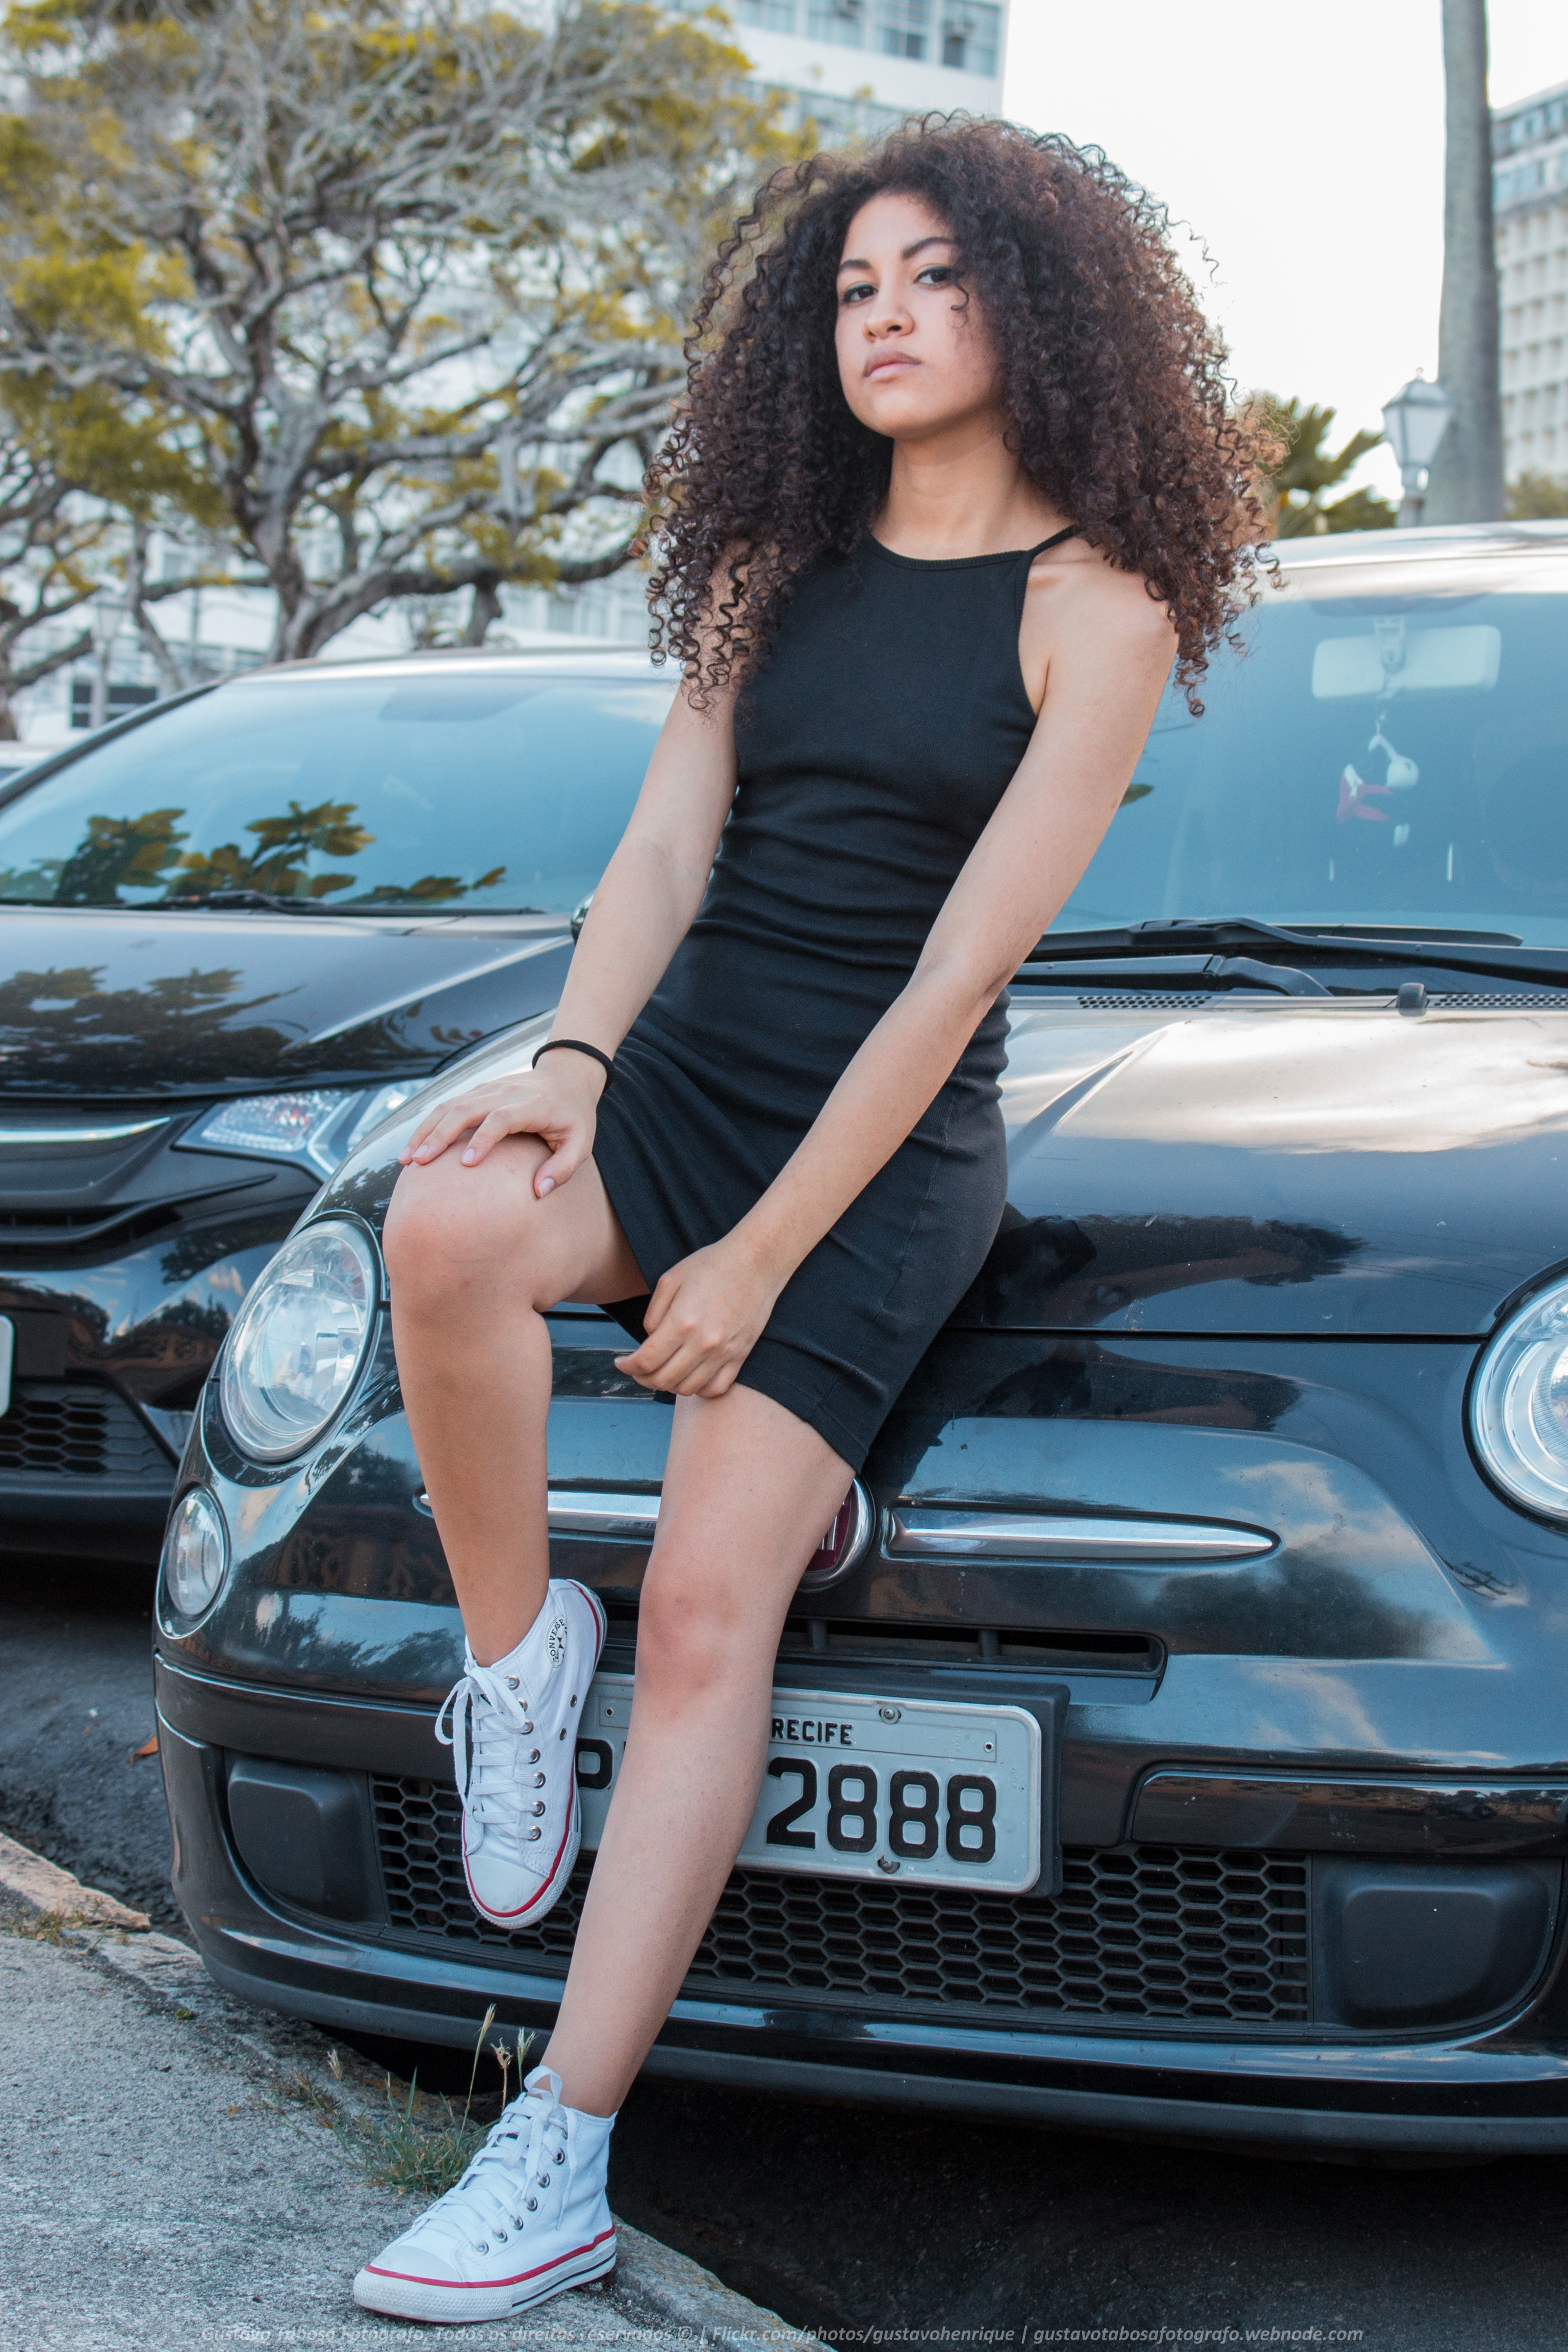 Woman in Black Spaghetti Strap Dress and White Converse All-star High-top, Attractive, Outdoors, Person, Photoshoot, HQ Photo